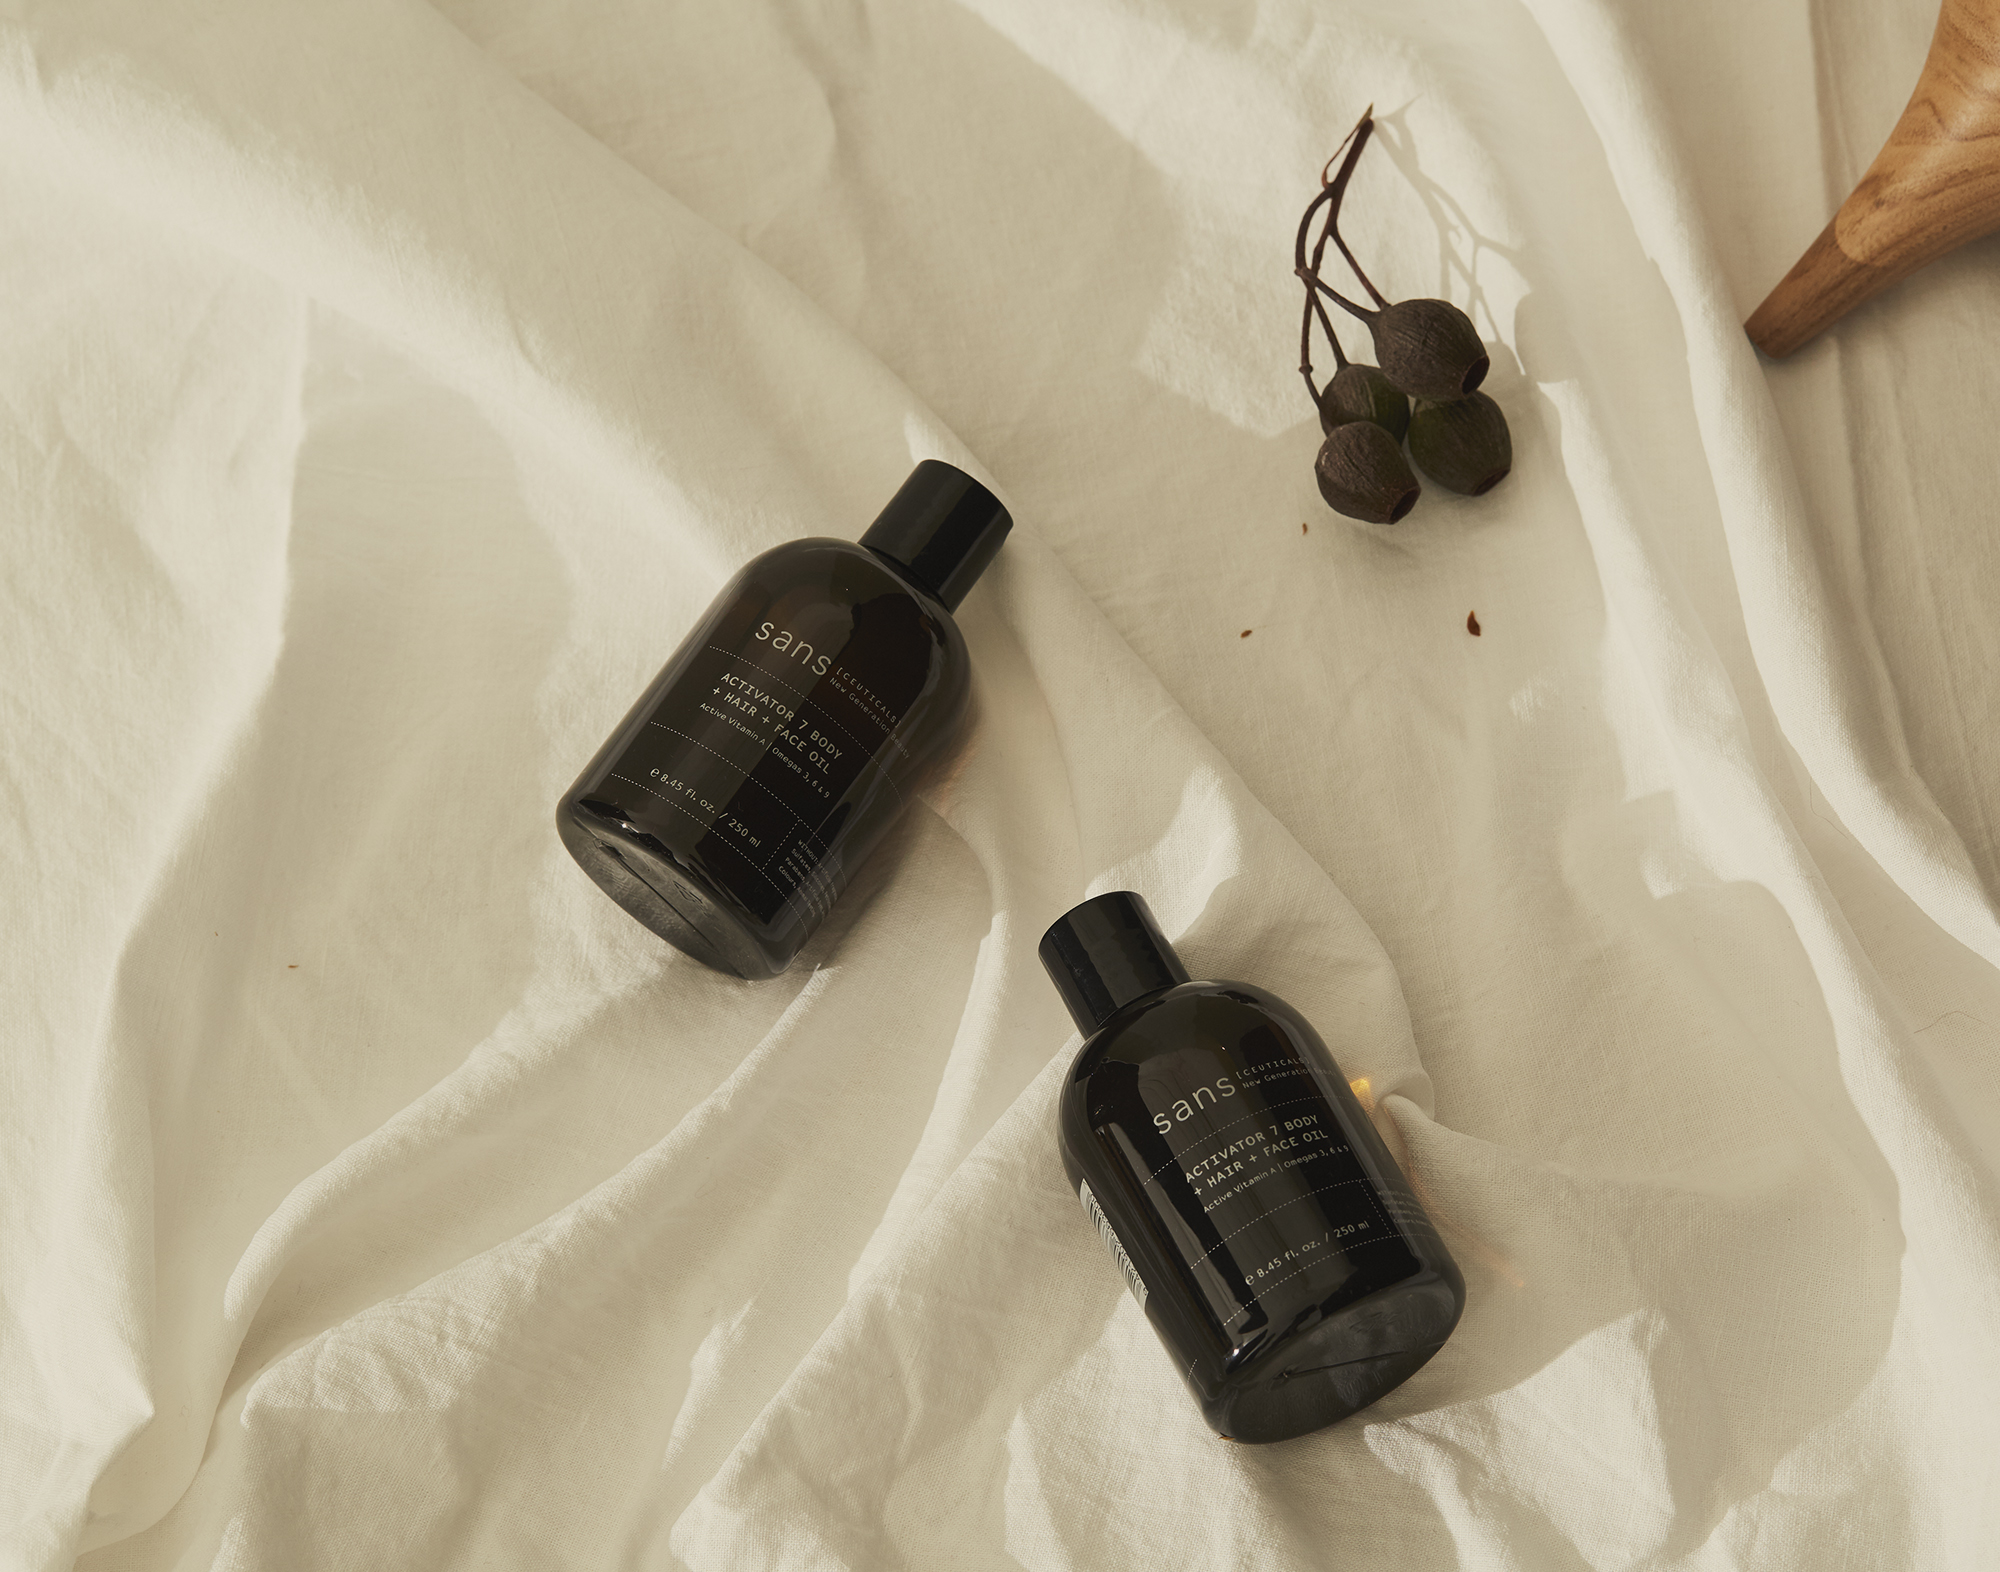 Sans Ceuticals oils to nourish the body and mind.